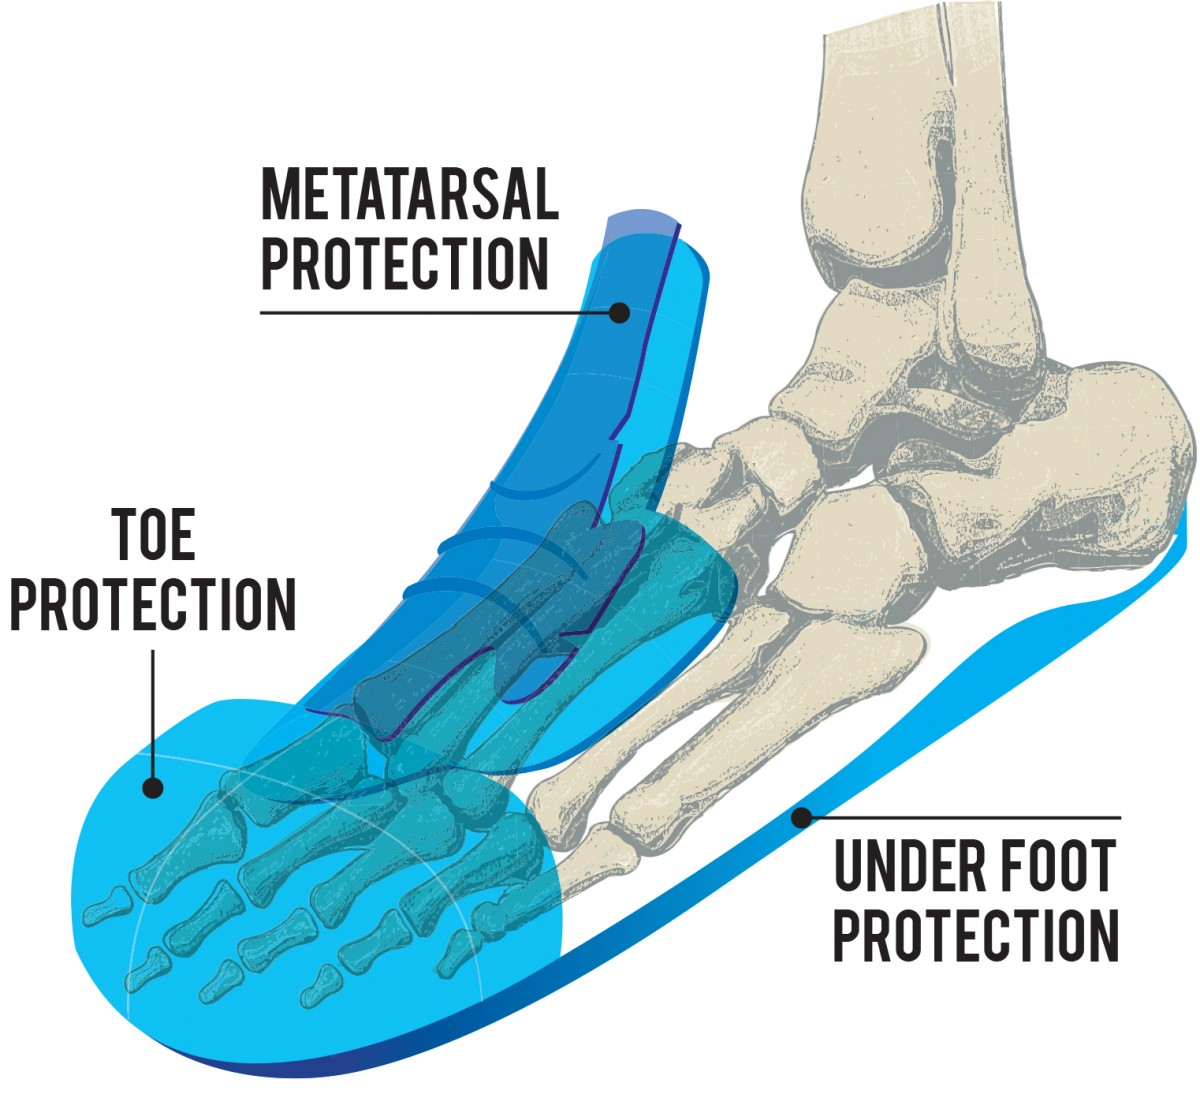 Metatarsal-Protection-Image-1200x1098